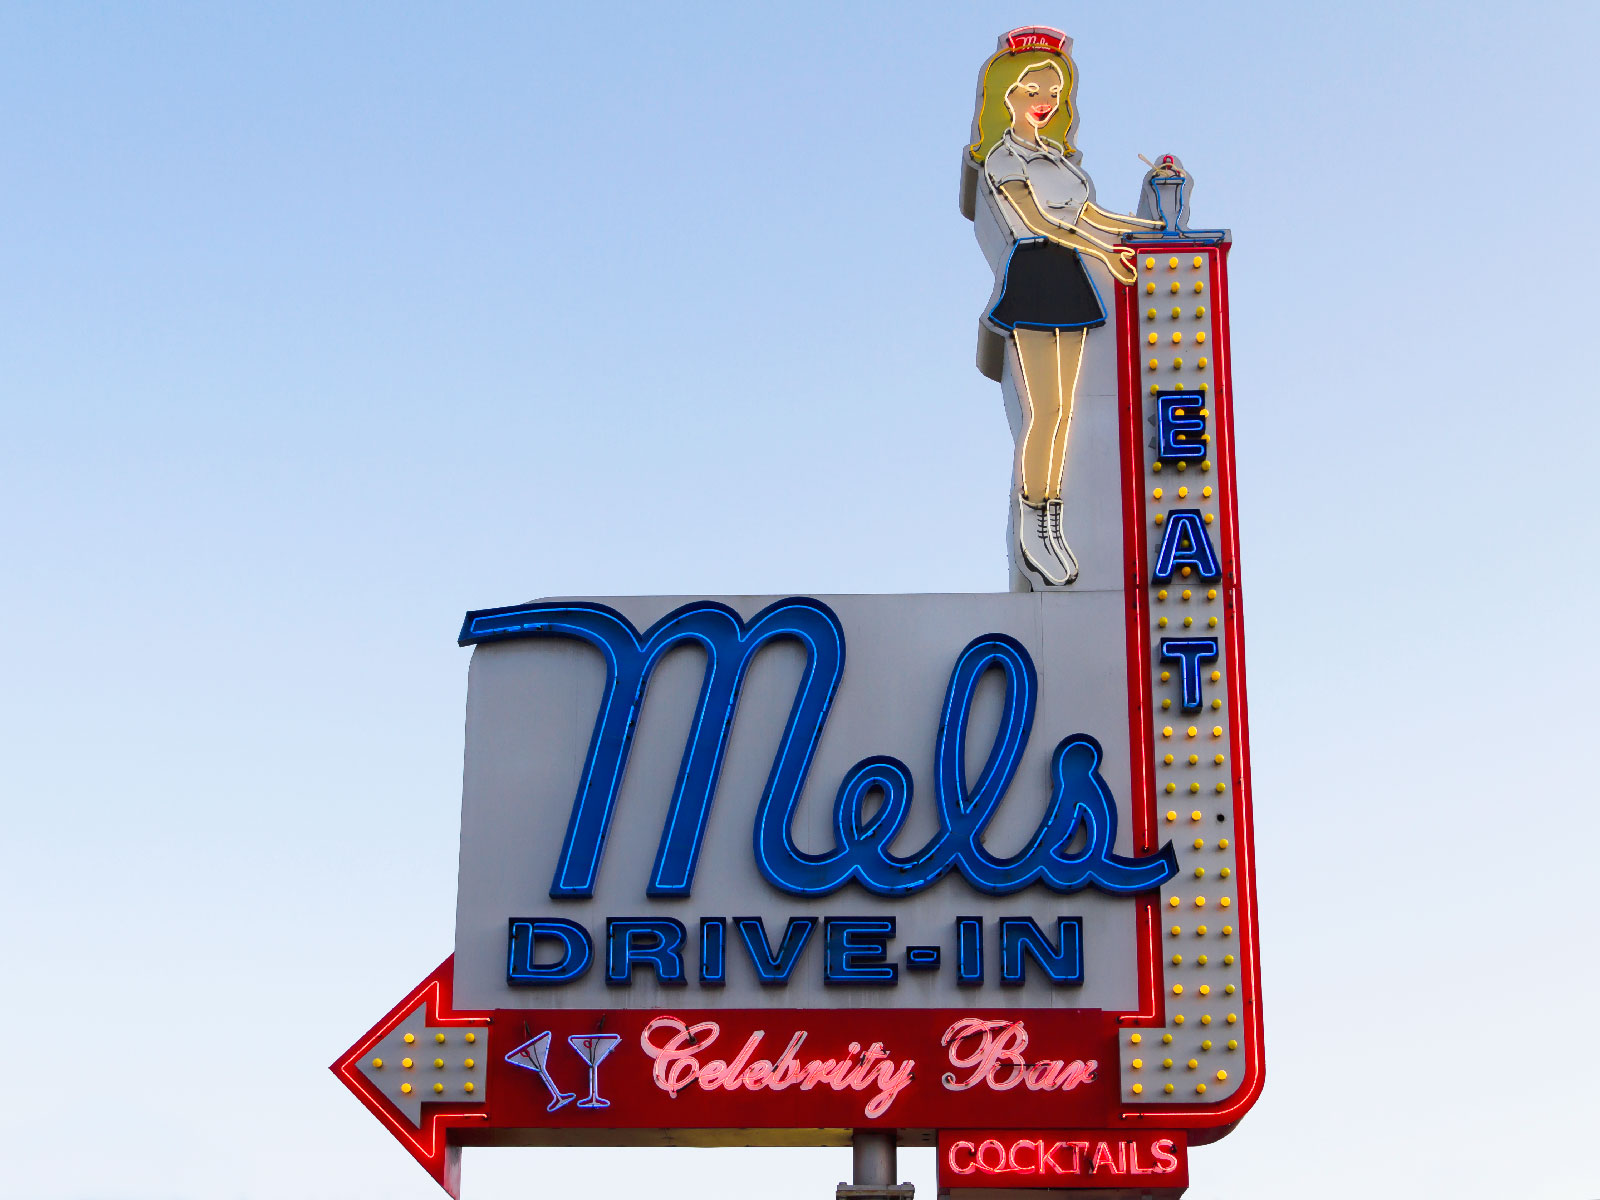 Los Angeles Restaurants Celebrate 'Maisel Day' with 1950s Prices